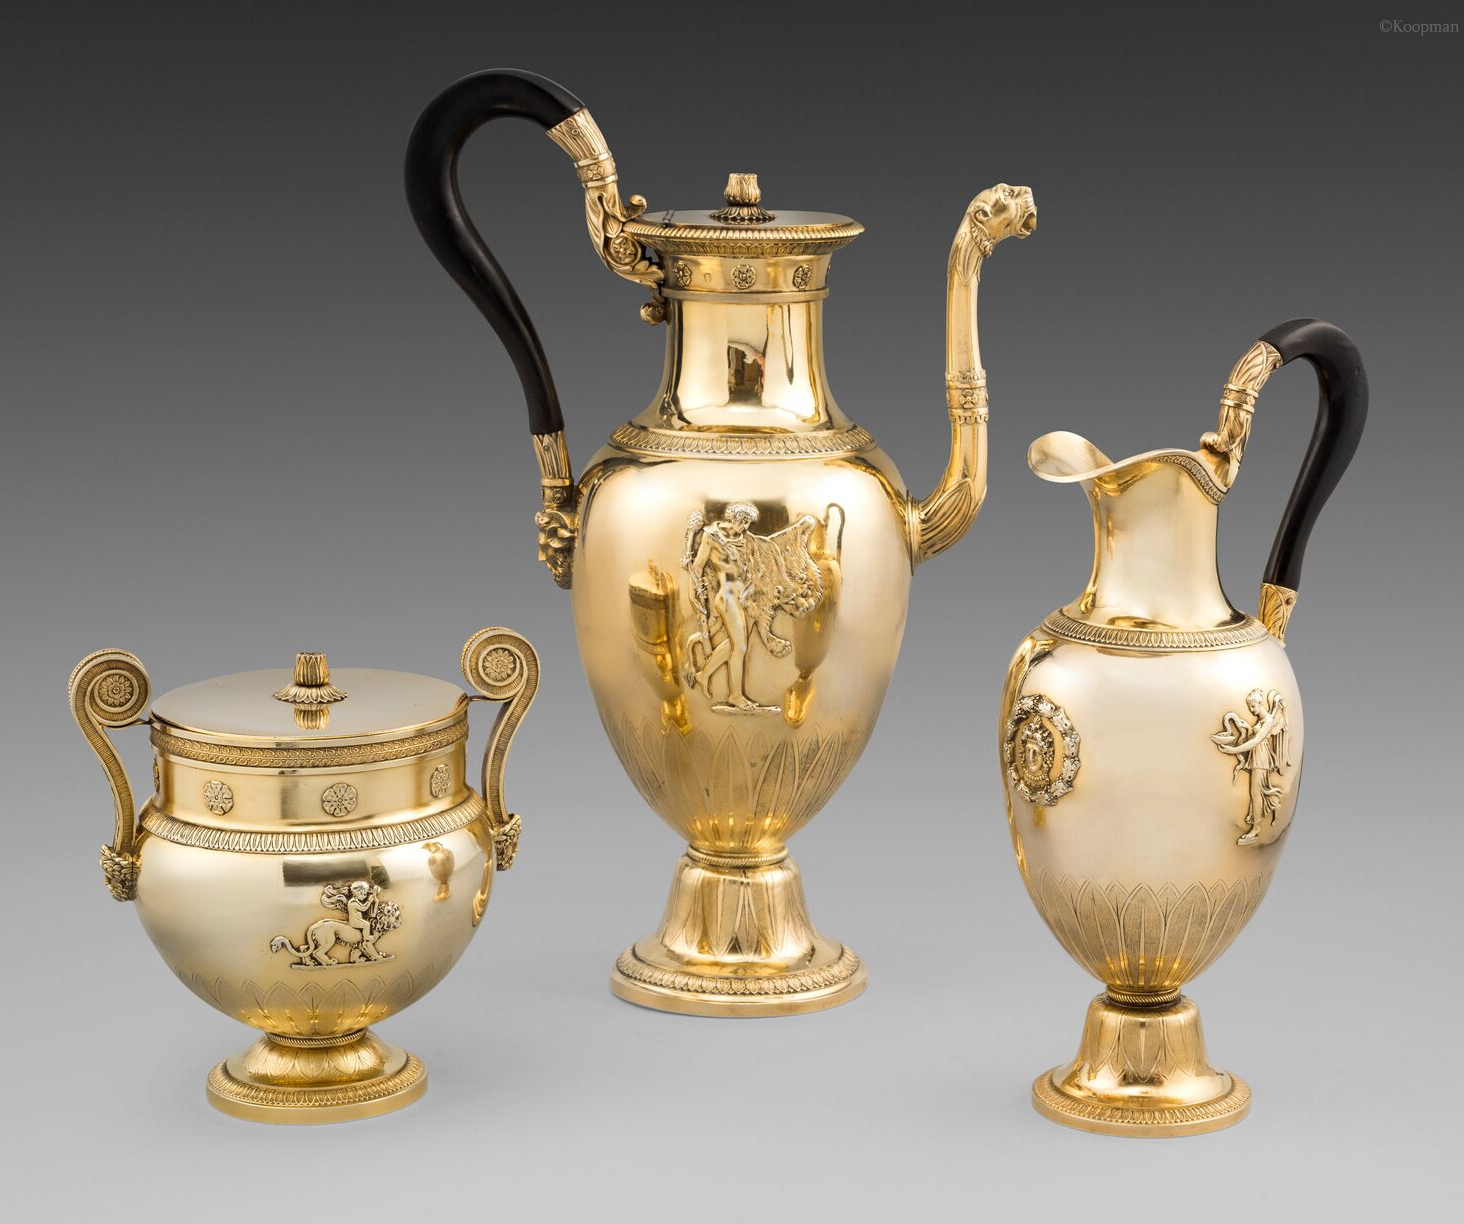 An Important 19th Century French Three-Piece Empire Coffee Service